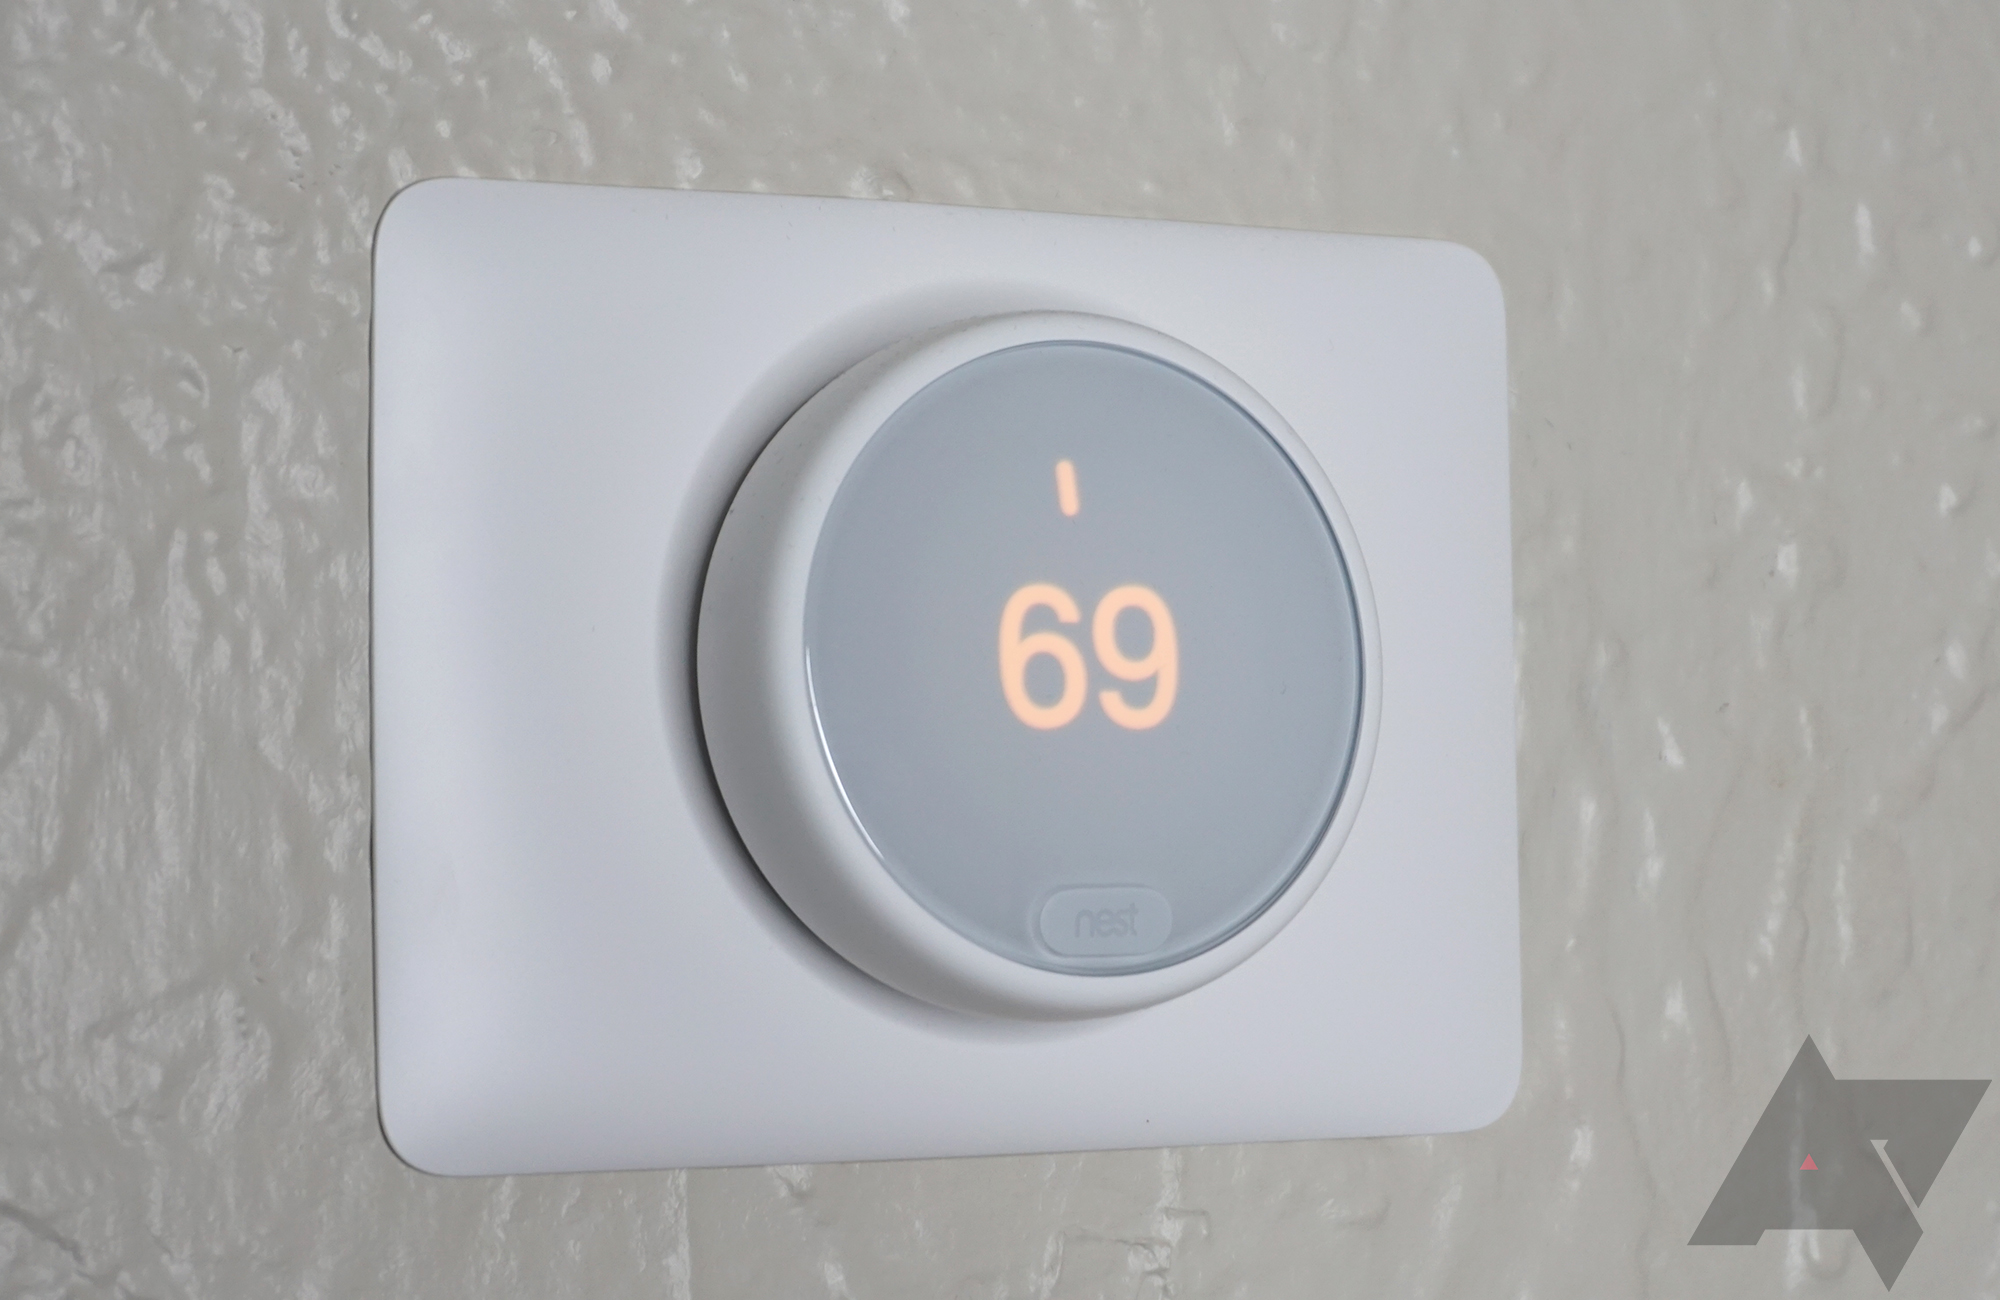 Wiring Your Nest Thermostat E Review Its Kind Of Silly Not To Buy One Before Made Cameras Home Security Systems Or Smoke Detectors There Was The Wasnt Anything Like Og When It Launched